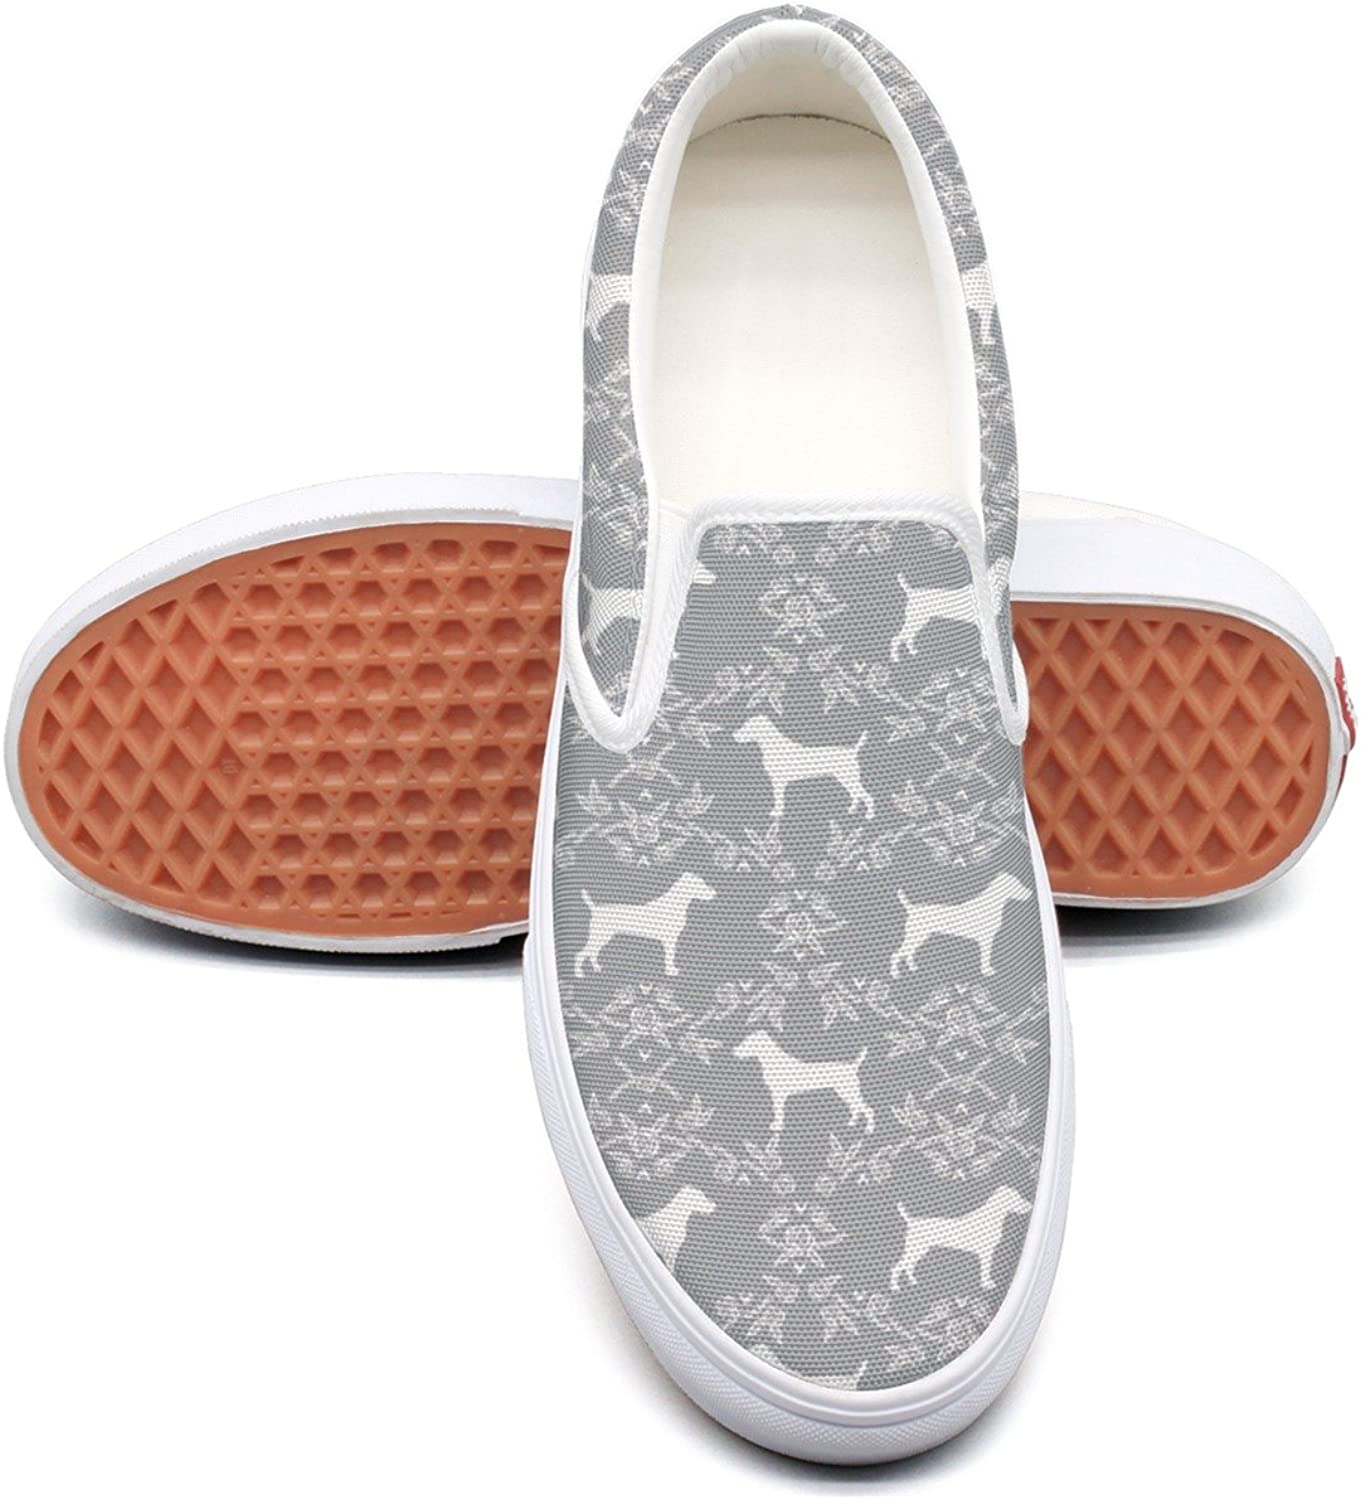 SEERTED Terrier Dog Silhouette Floral Canvas Slip On shoes for Women